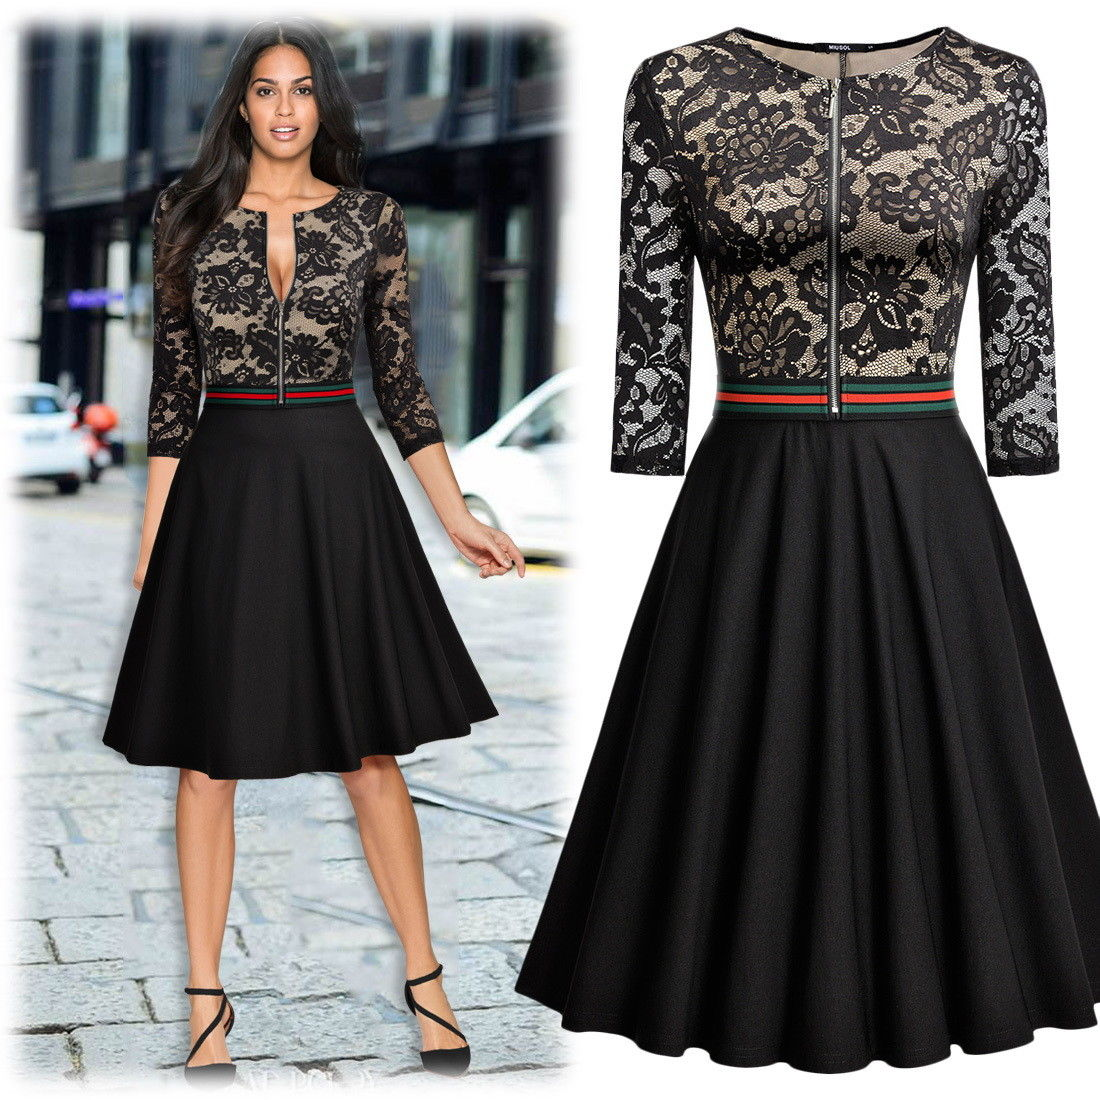 Girls Fashion Styles: Amazing Women's Retro Style Floral Lace Evening Party